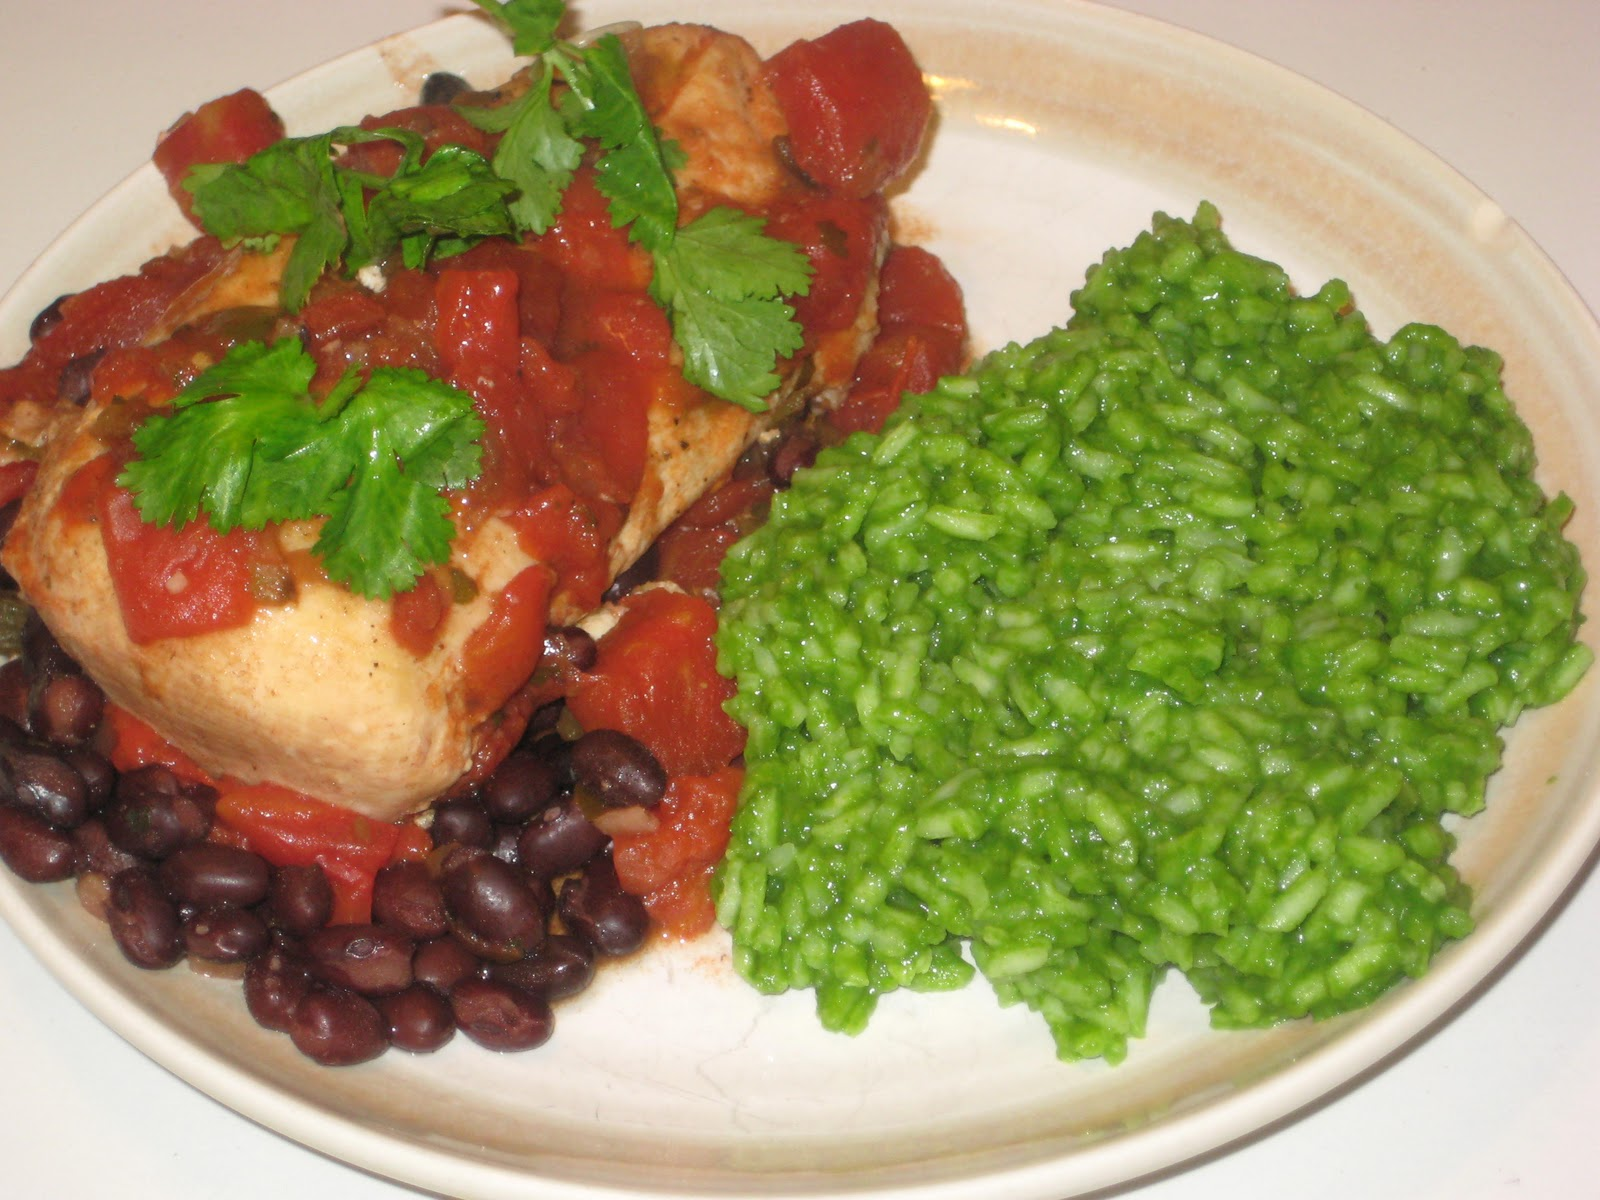 The menu mama mexajita chicken and green rice i combine a rachael ray rice recipe that my mother in law shared with me and an easy crockpot chicken dish from the food network forumfinder Images